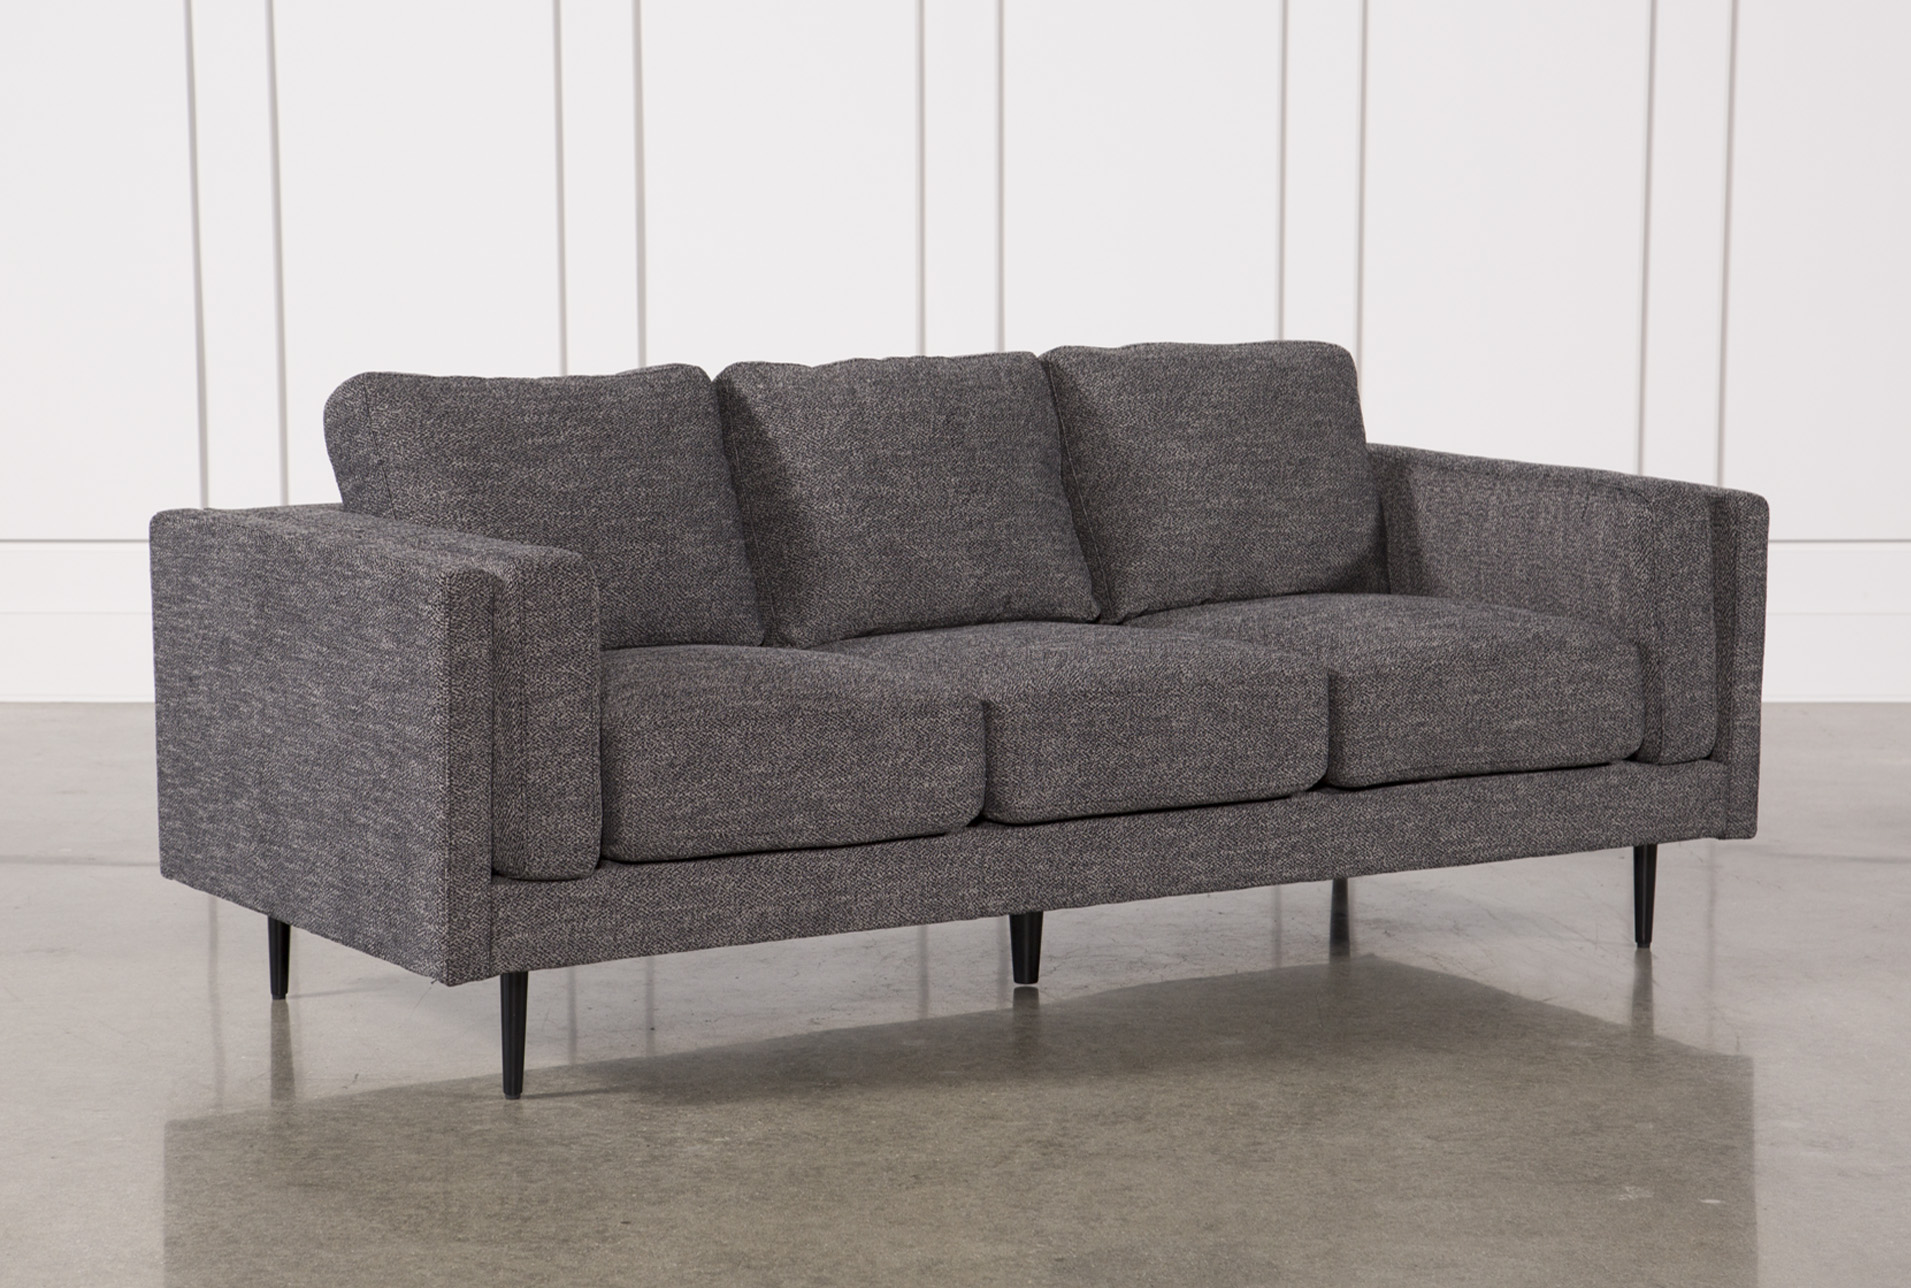 Delightful Aquarius Dark Grey Sofa (Qty: 1) Has Been Successfully Added To Your Cart.